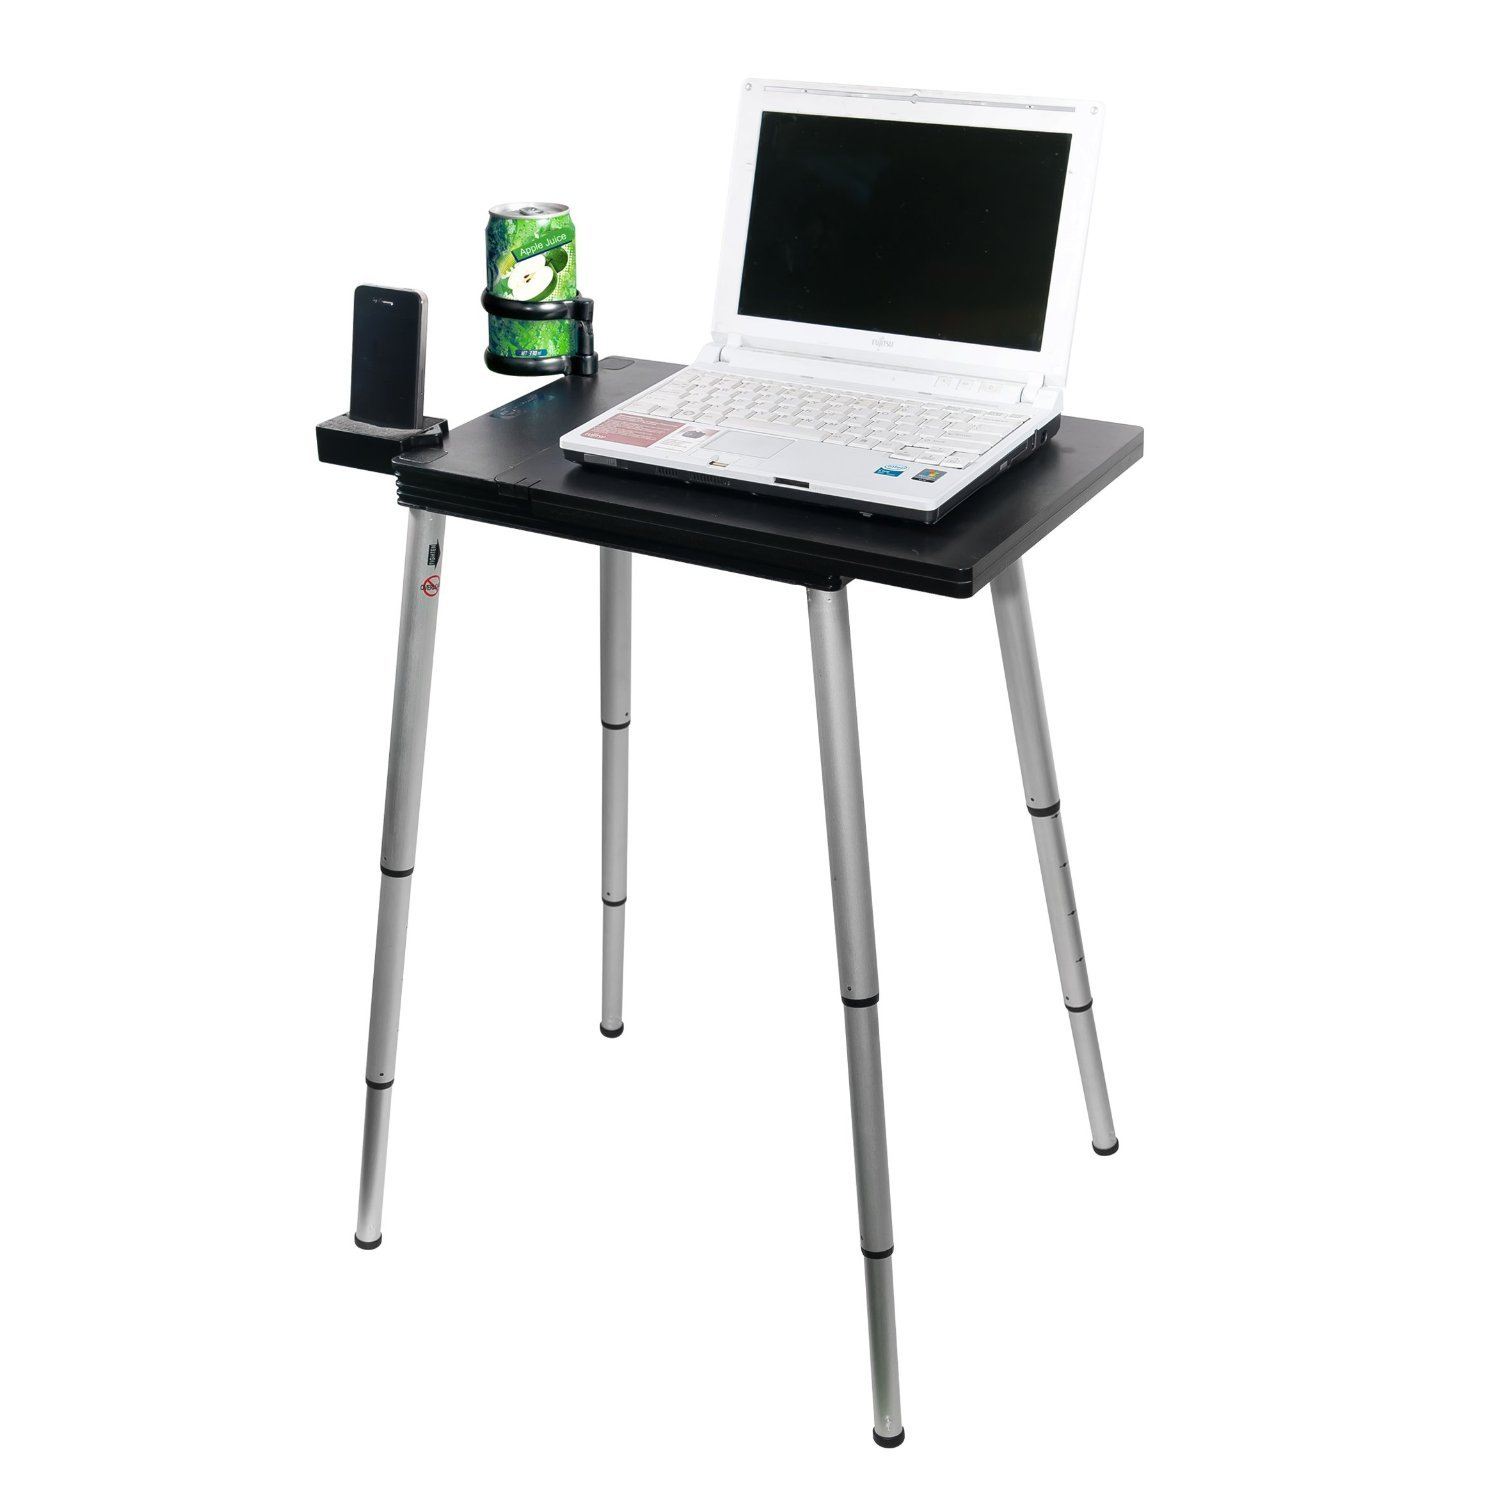 Top Rated Picture Of Laptop Stand For Desk - DeskDesigns.Net